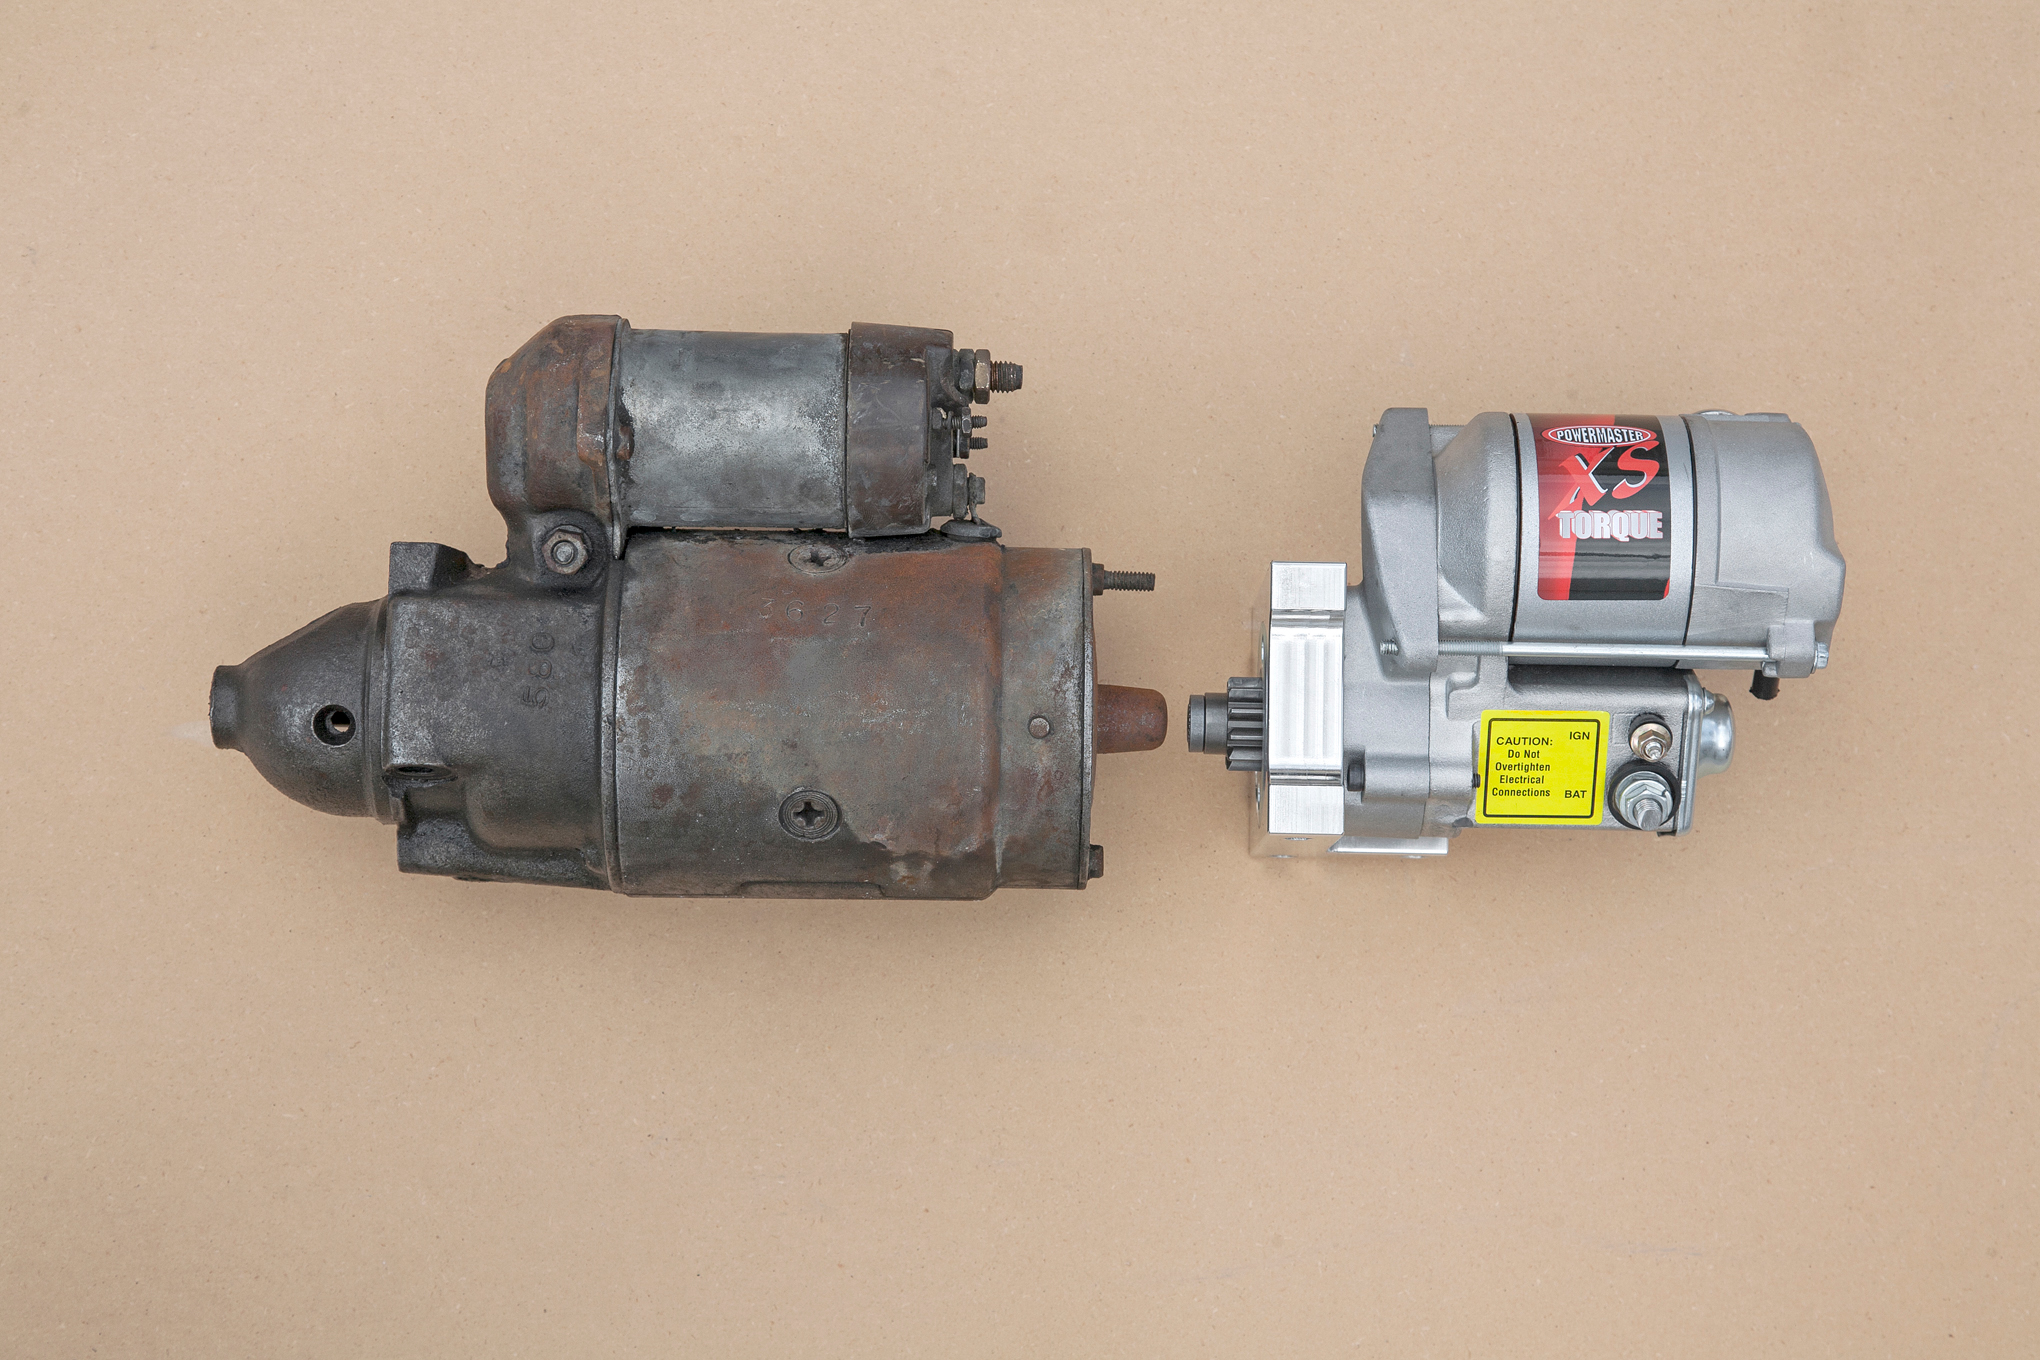 gm mini starter wiring starter hm 7136  starter wiring diagram together with chevy high torque  hm 7136  starter wiring diagram